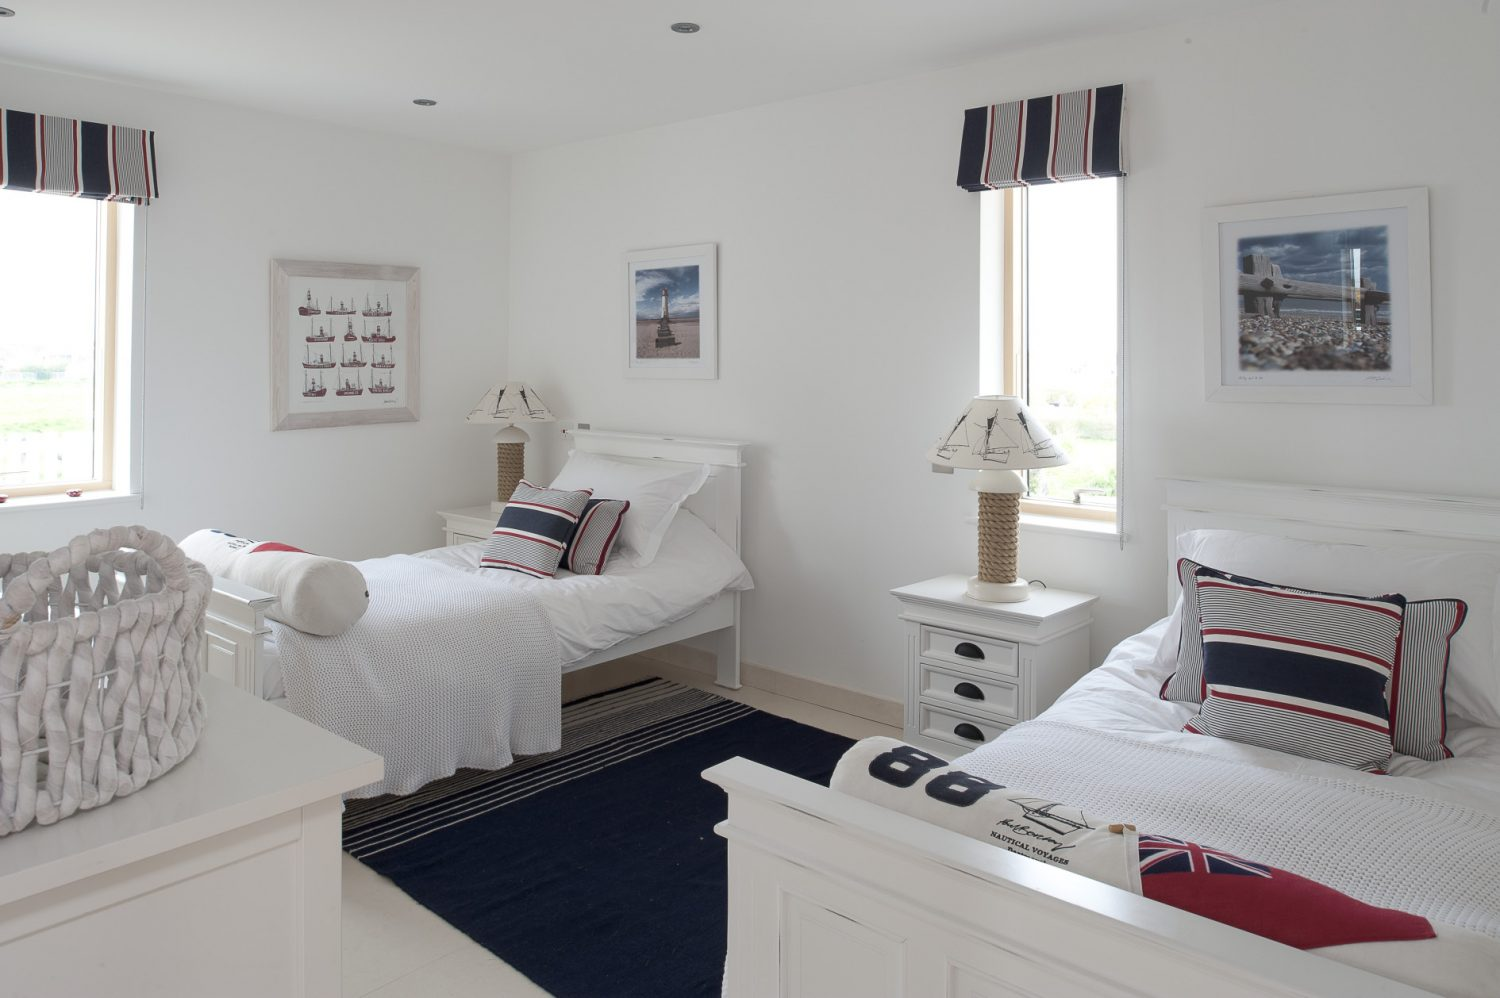 Downstairs, a corridor leads to a twin bedroom with white sleigh beds, knitted covers and red, white and navy blue striped blinds and cushions